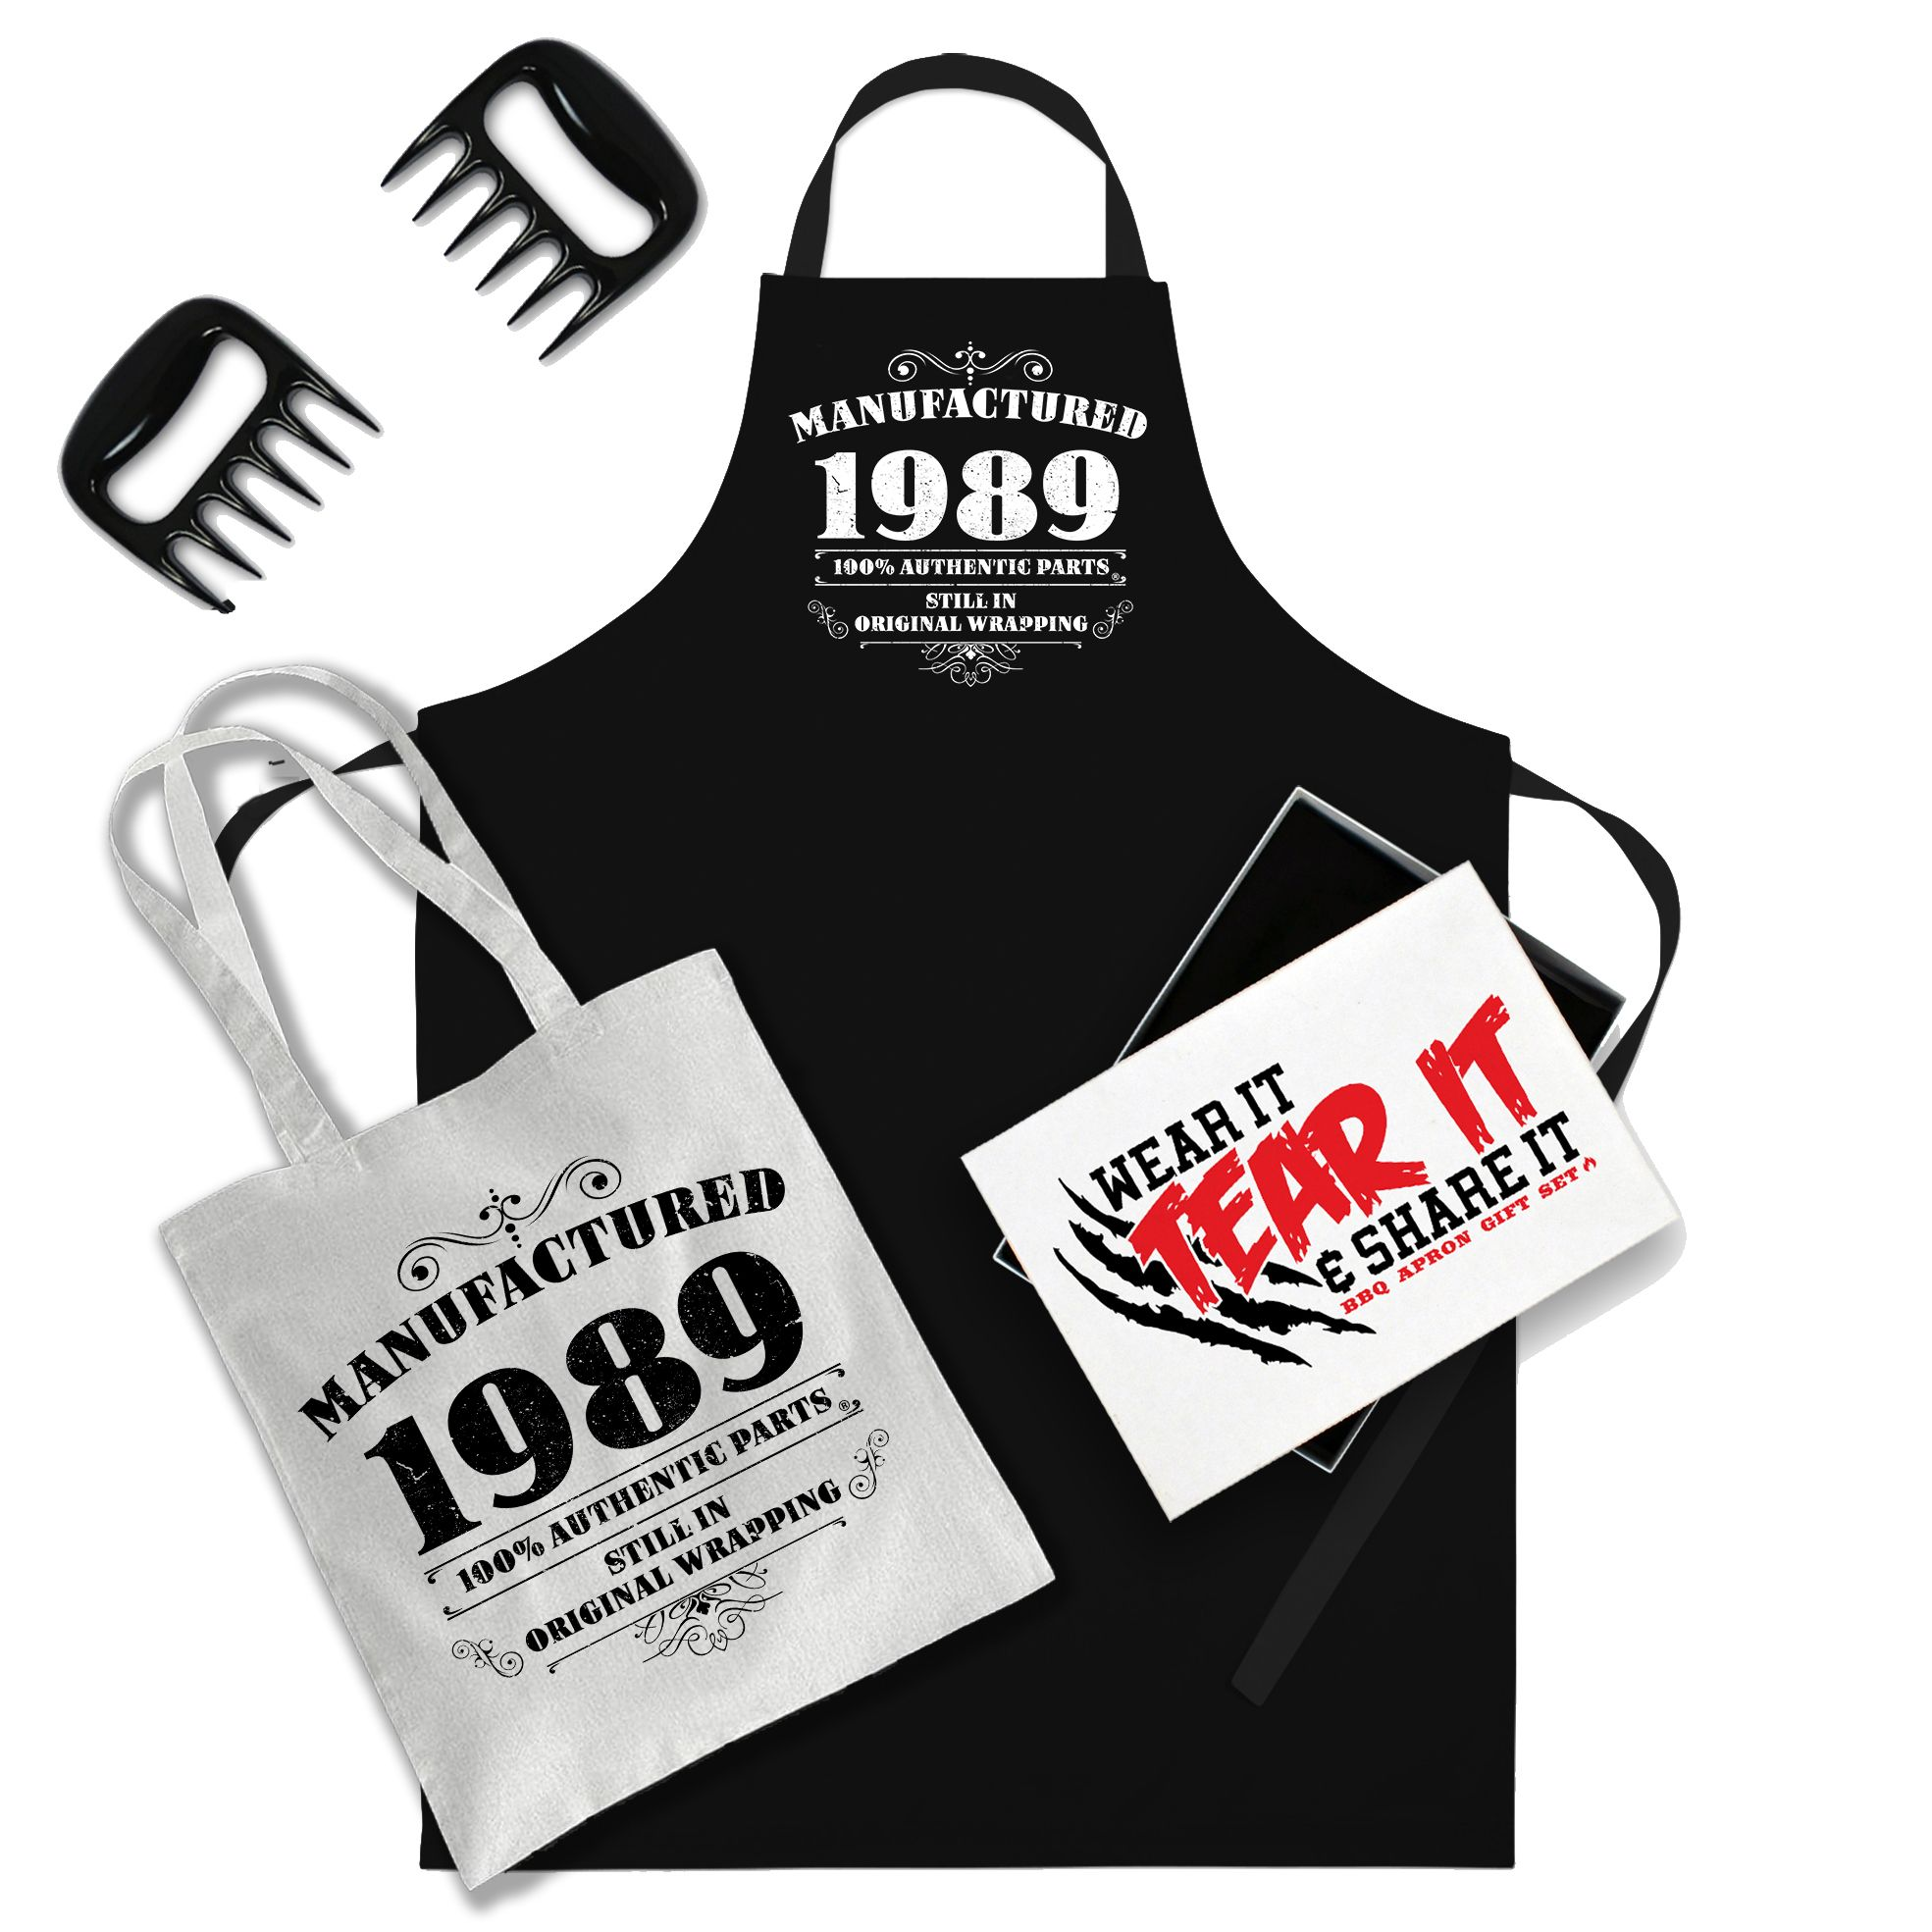 BIRTHDAY Gift Idea Cooks Apron MADE IN 1989 All Original Parts Excellent Gift